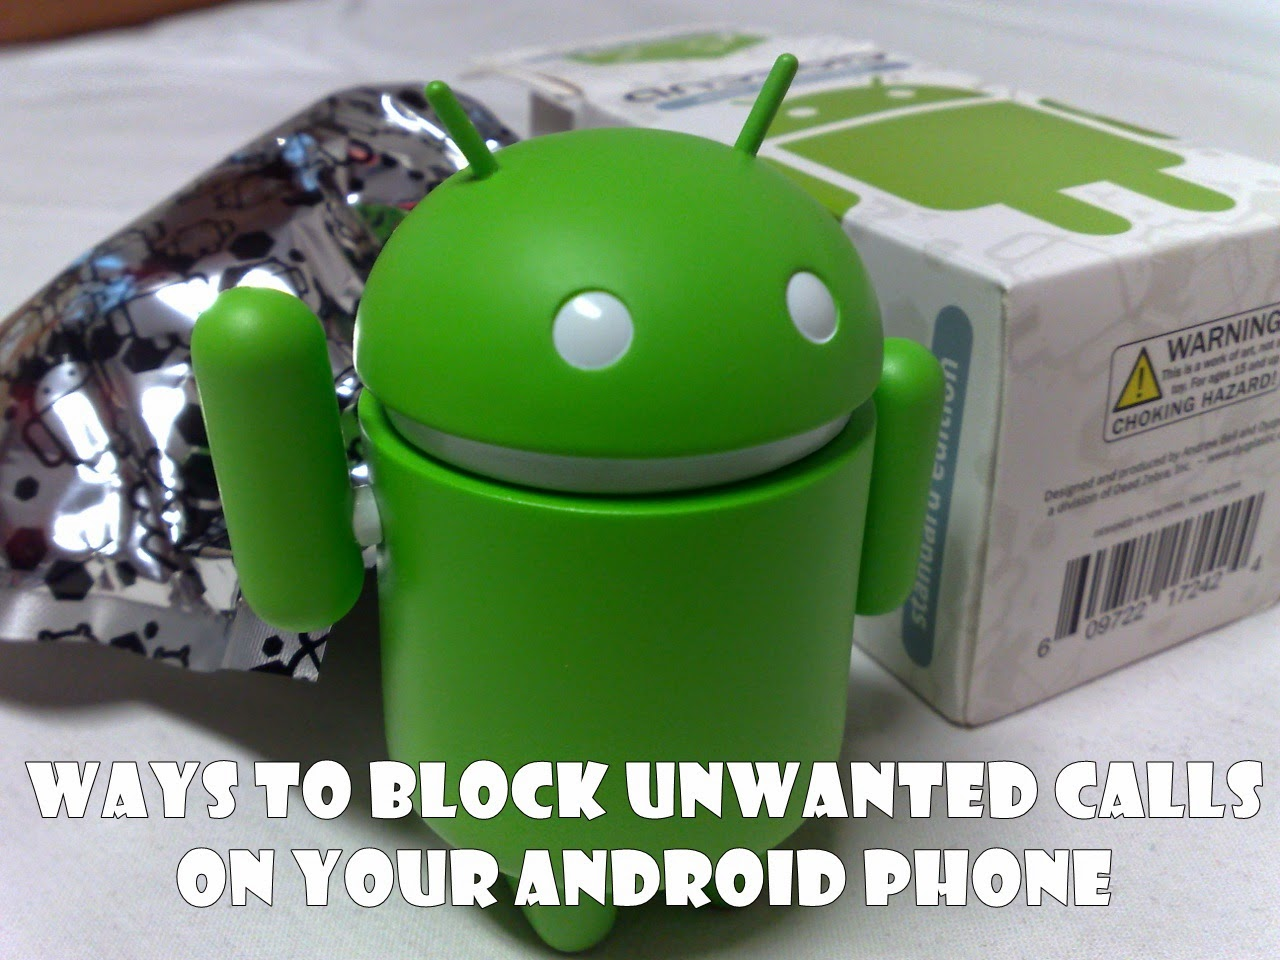 Ways to Block Unwanted Calls on Your Android Phone